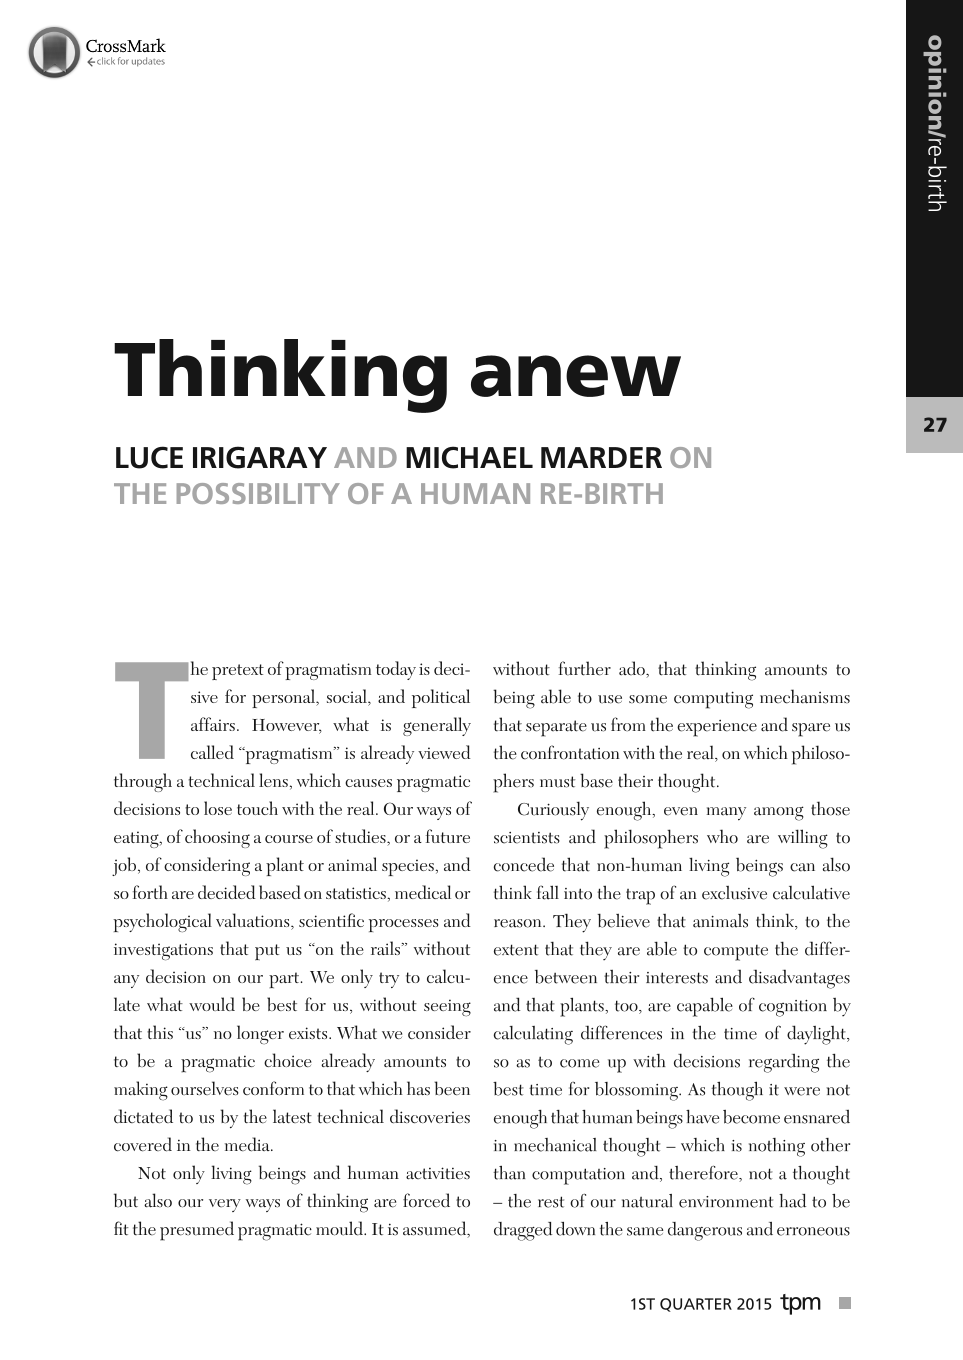 Thinking anew - Luce Irigaray, Michael Marder - The